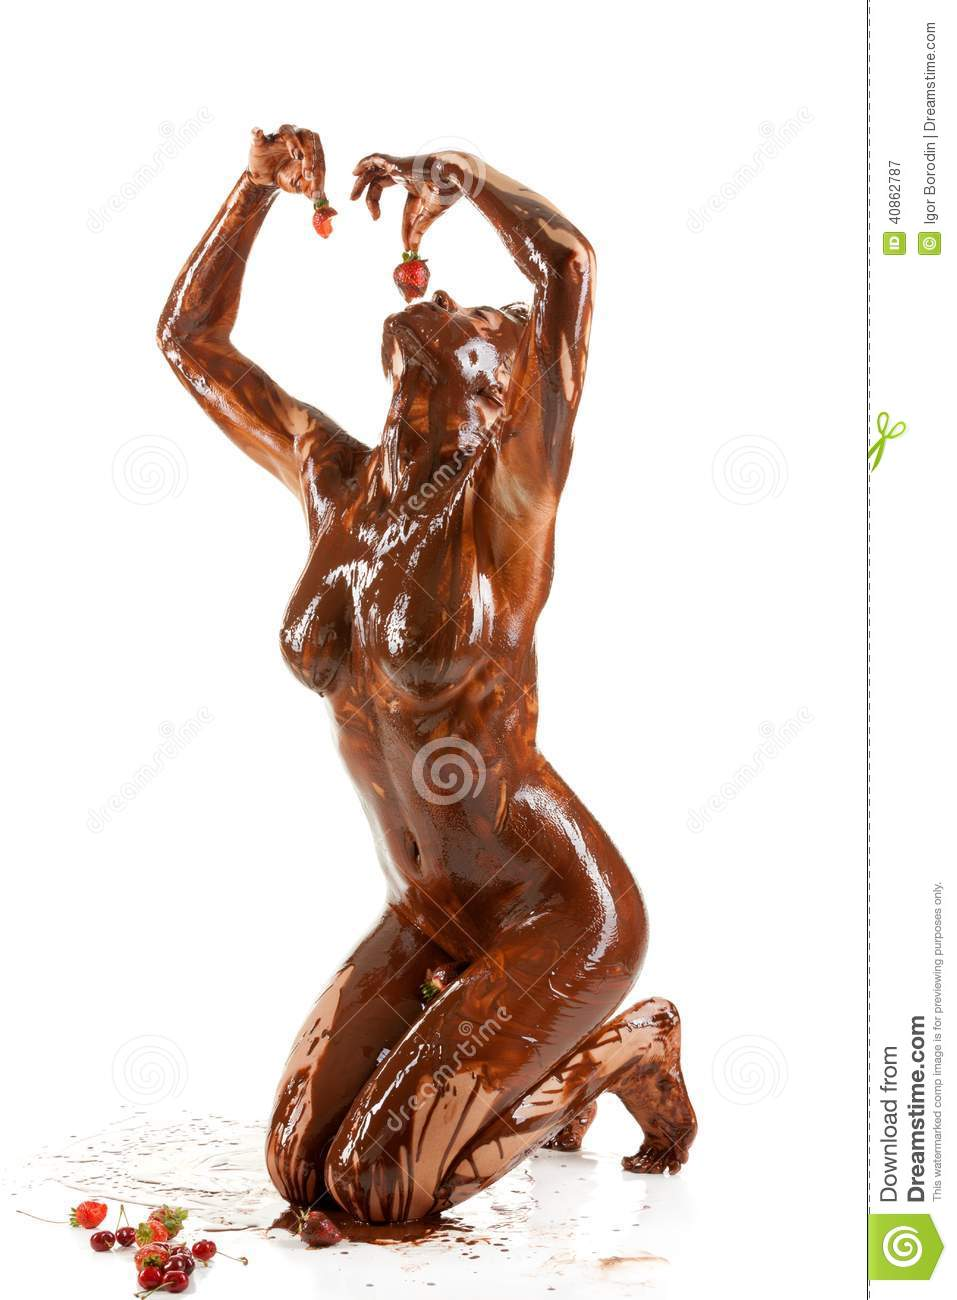 Women covered in chocolate nude, swallow it tween